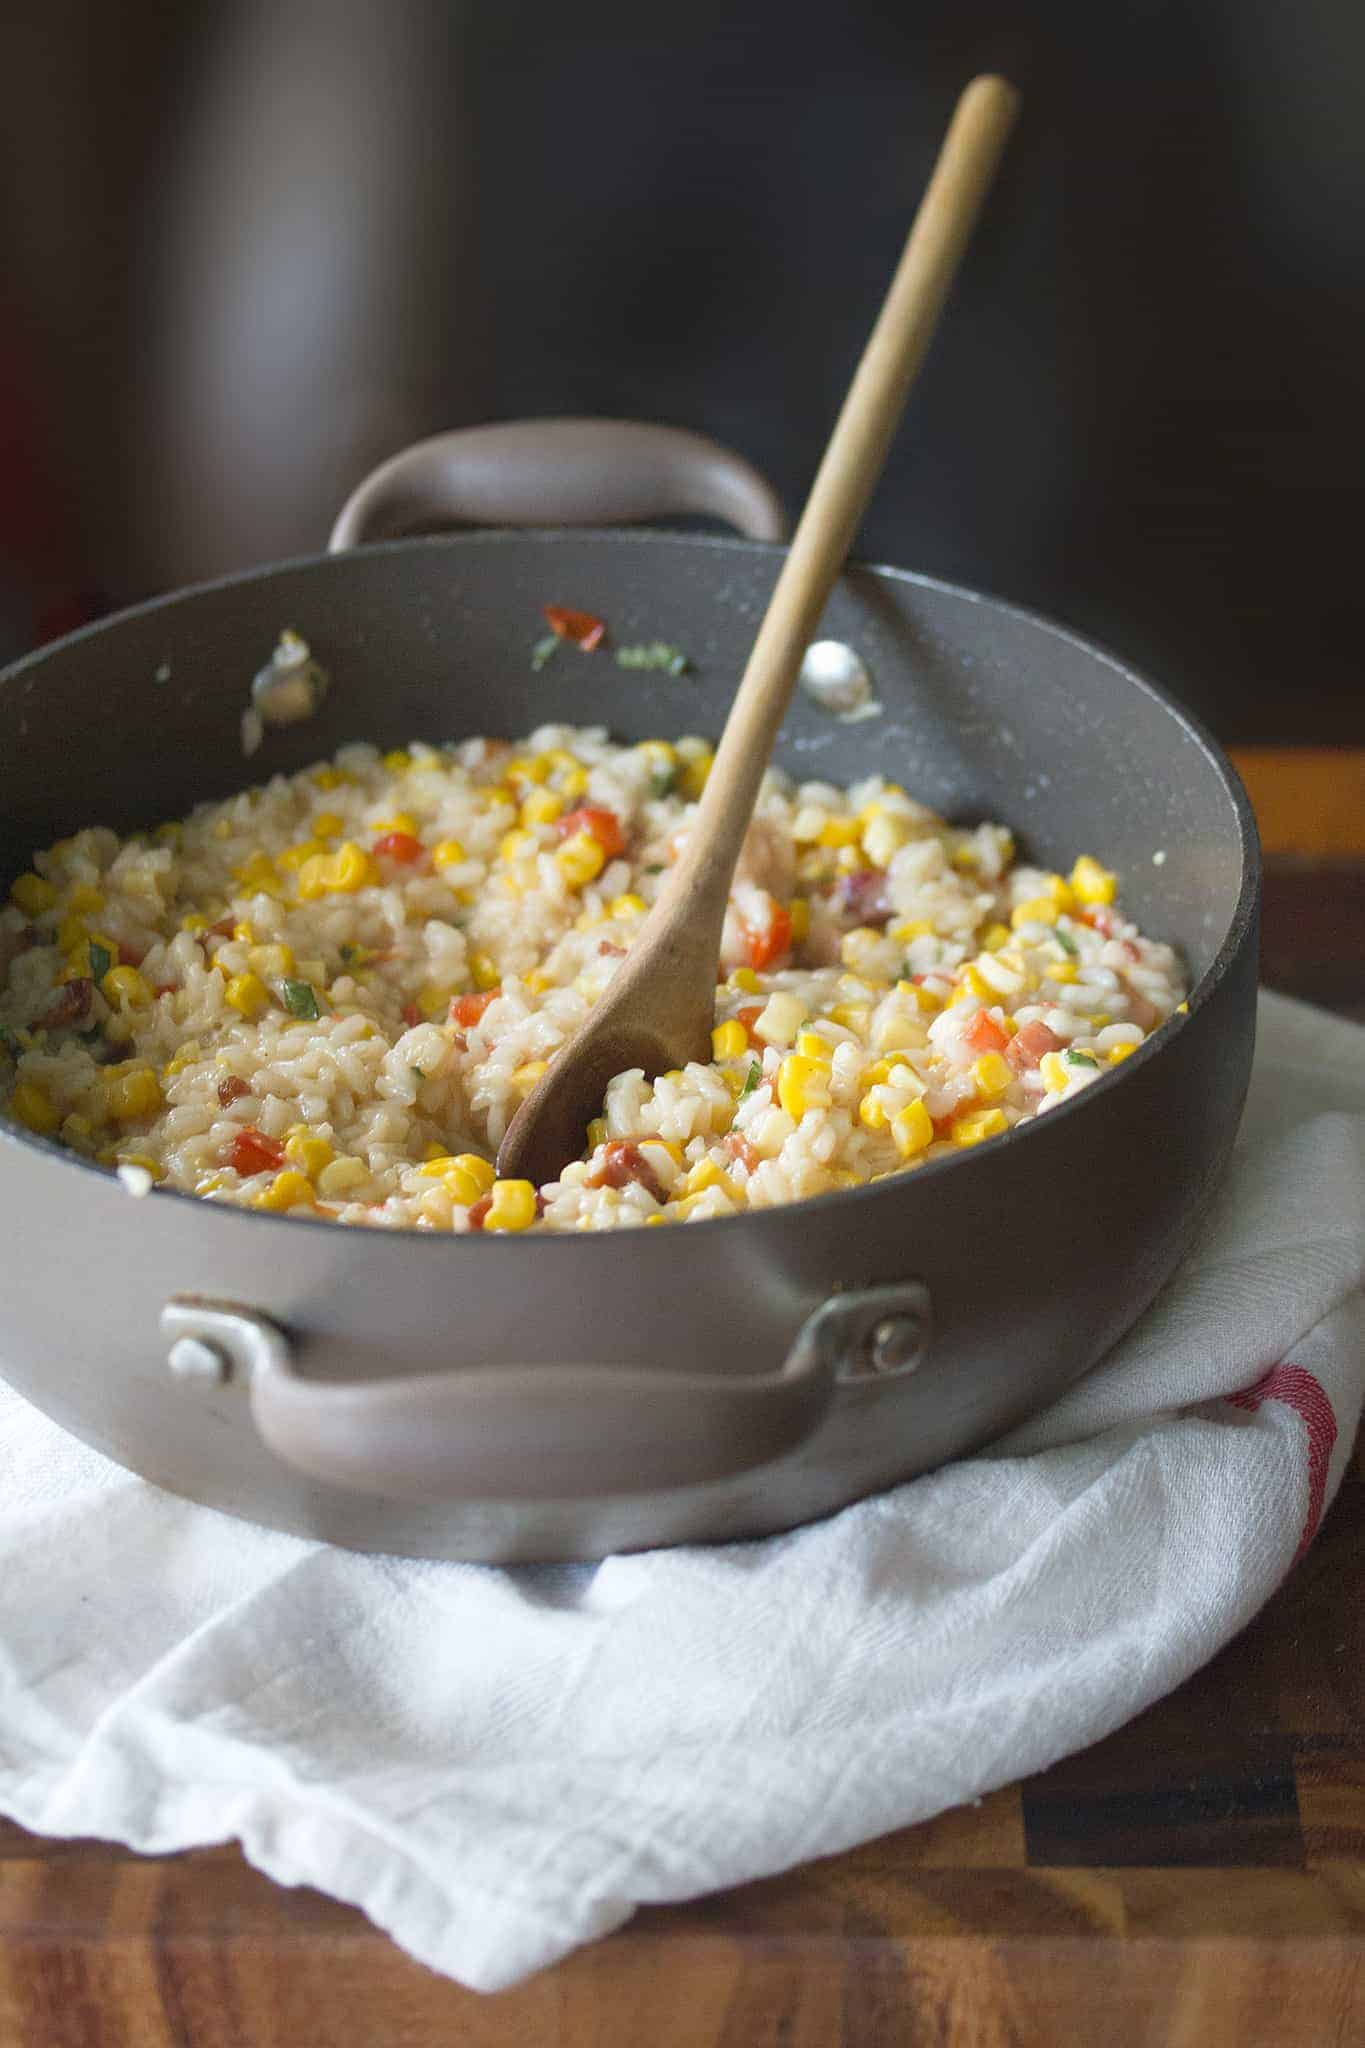 A-Maize-Ing Grace: Red Pepper, Corn and Bacon Risotto